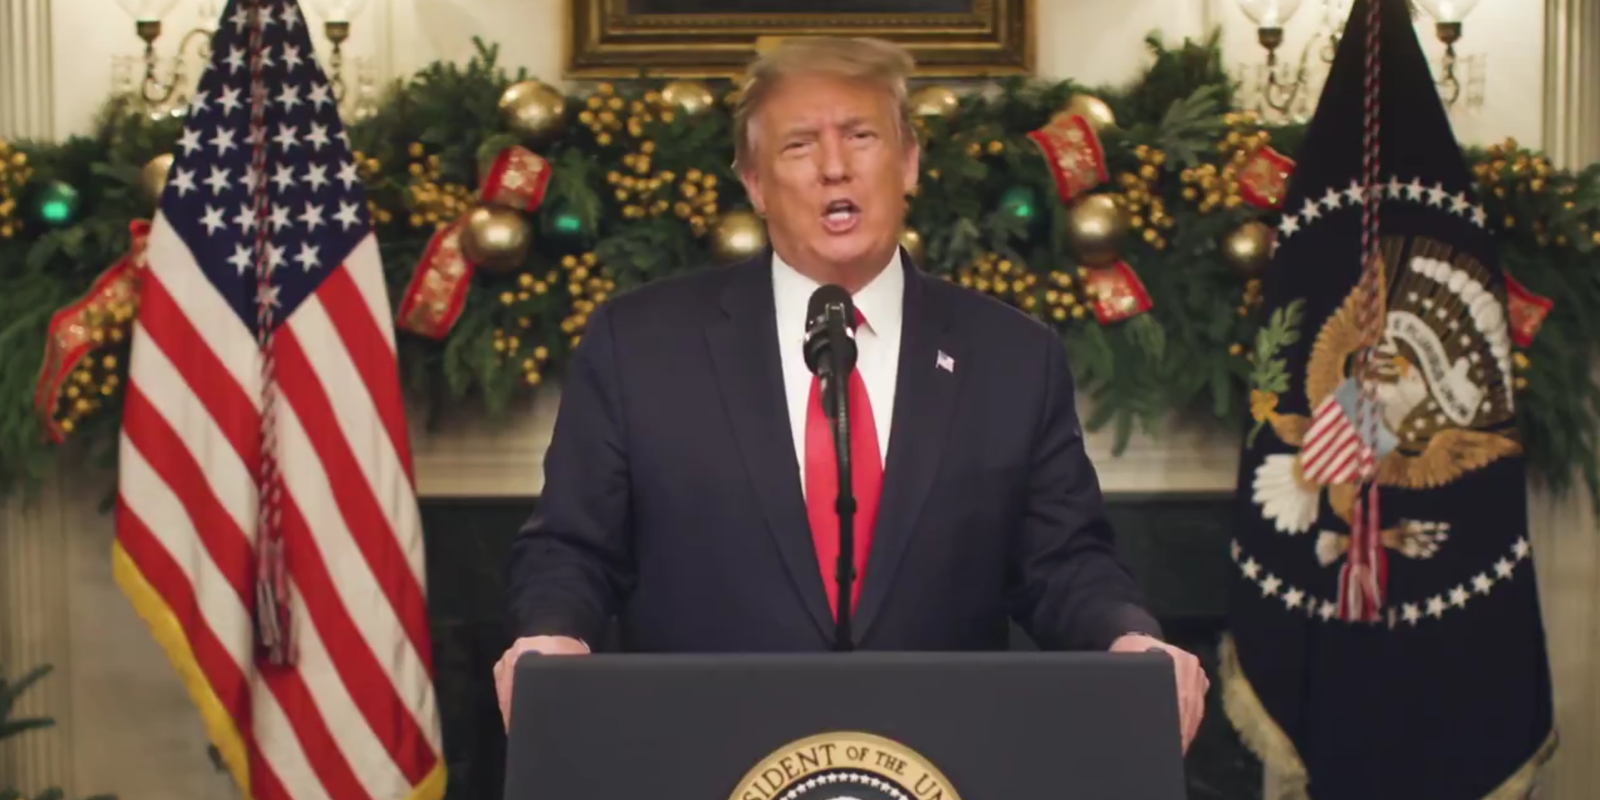 BREAKING: Trump SLAMS Congress for wasteful COVID relief bill, demands $2000 checks for Americans